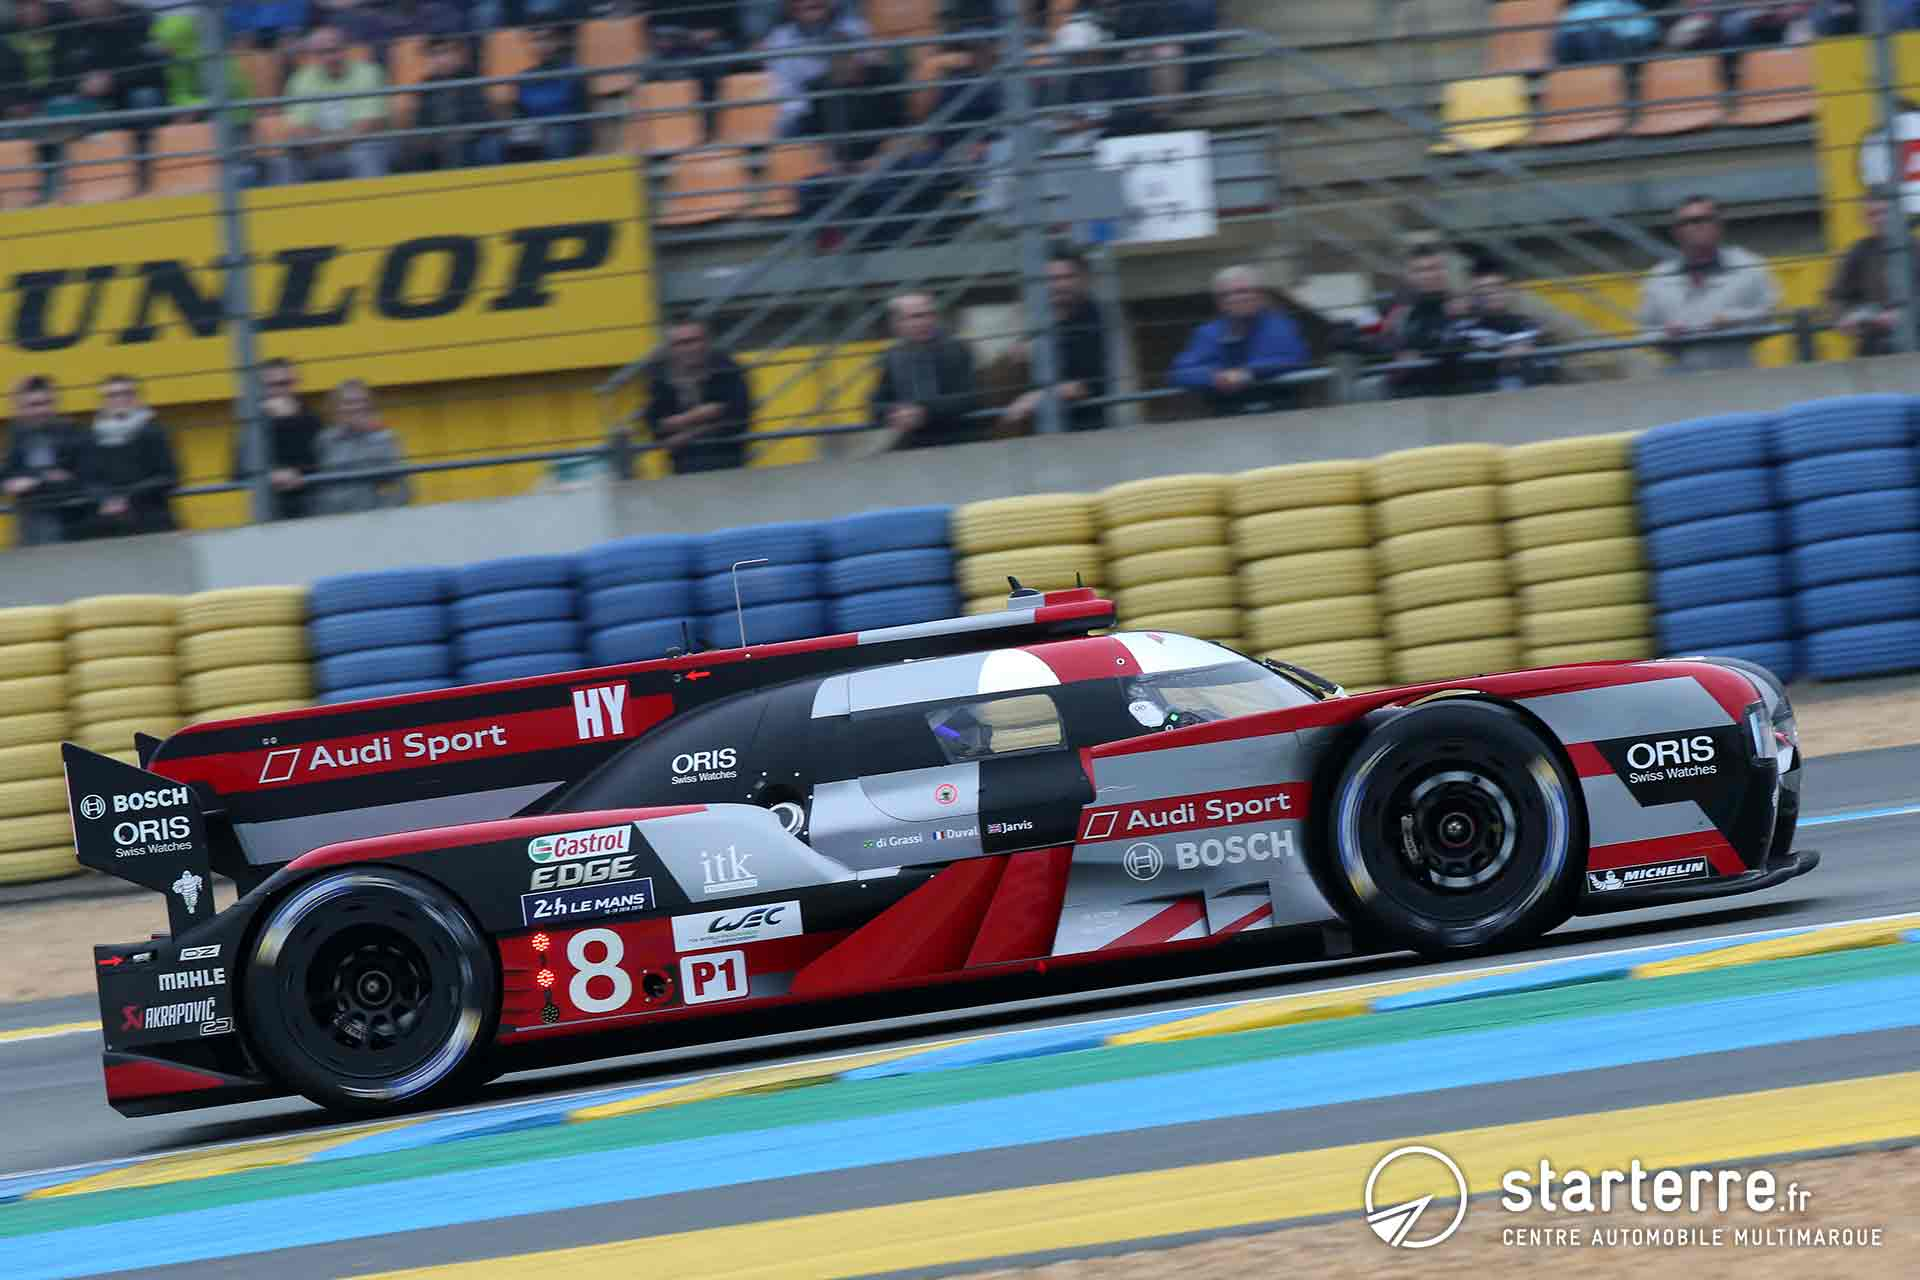 24 heures du mans la journ e test pour pr parer ses armes lmp1 sport auto. Black Bedroom Furniture Sets. Home Design Ideas